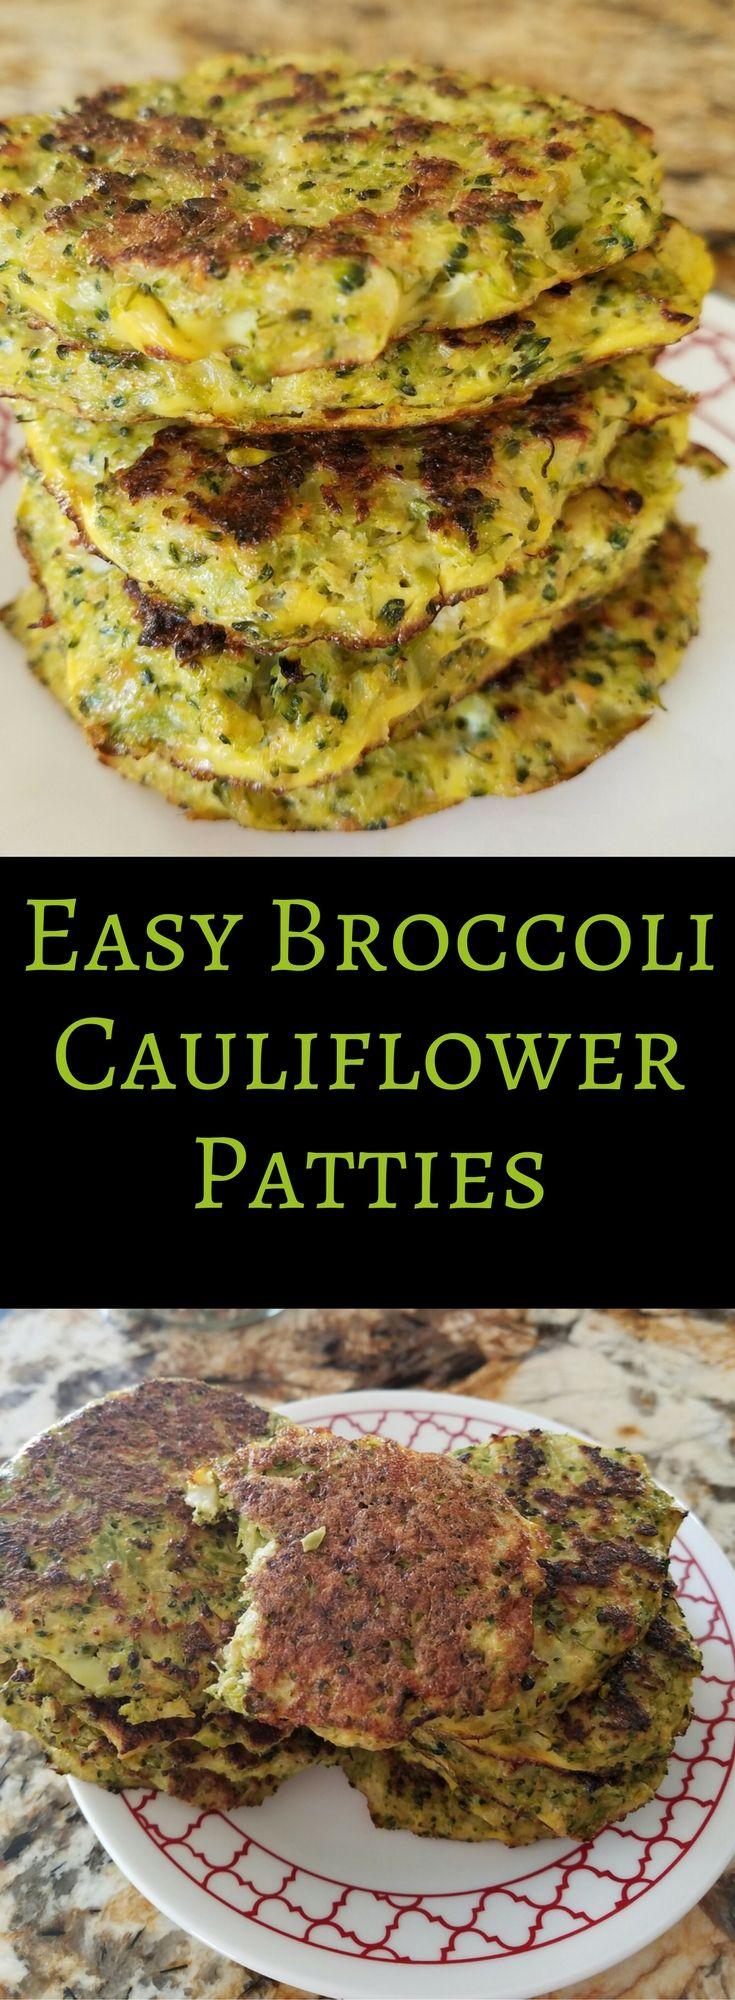 These easy to make broccoli cauliflower patties are a favorite at our house. Healthy, gluten free, low carb, vegetarian, they are great no matter what diet you follow